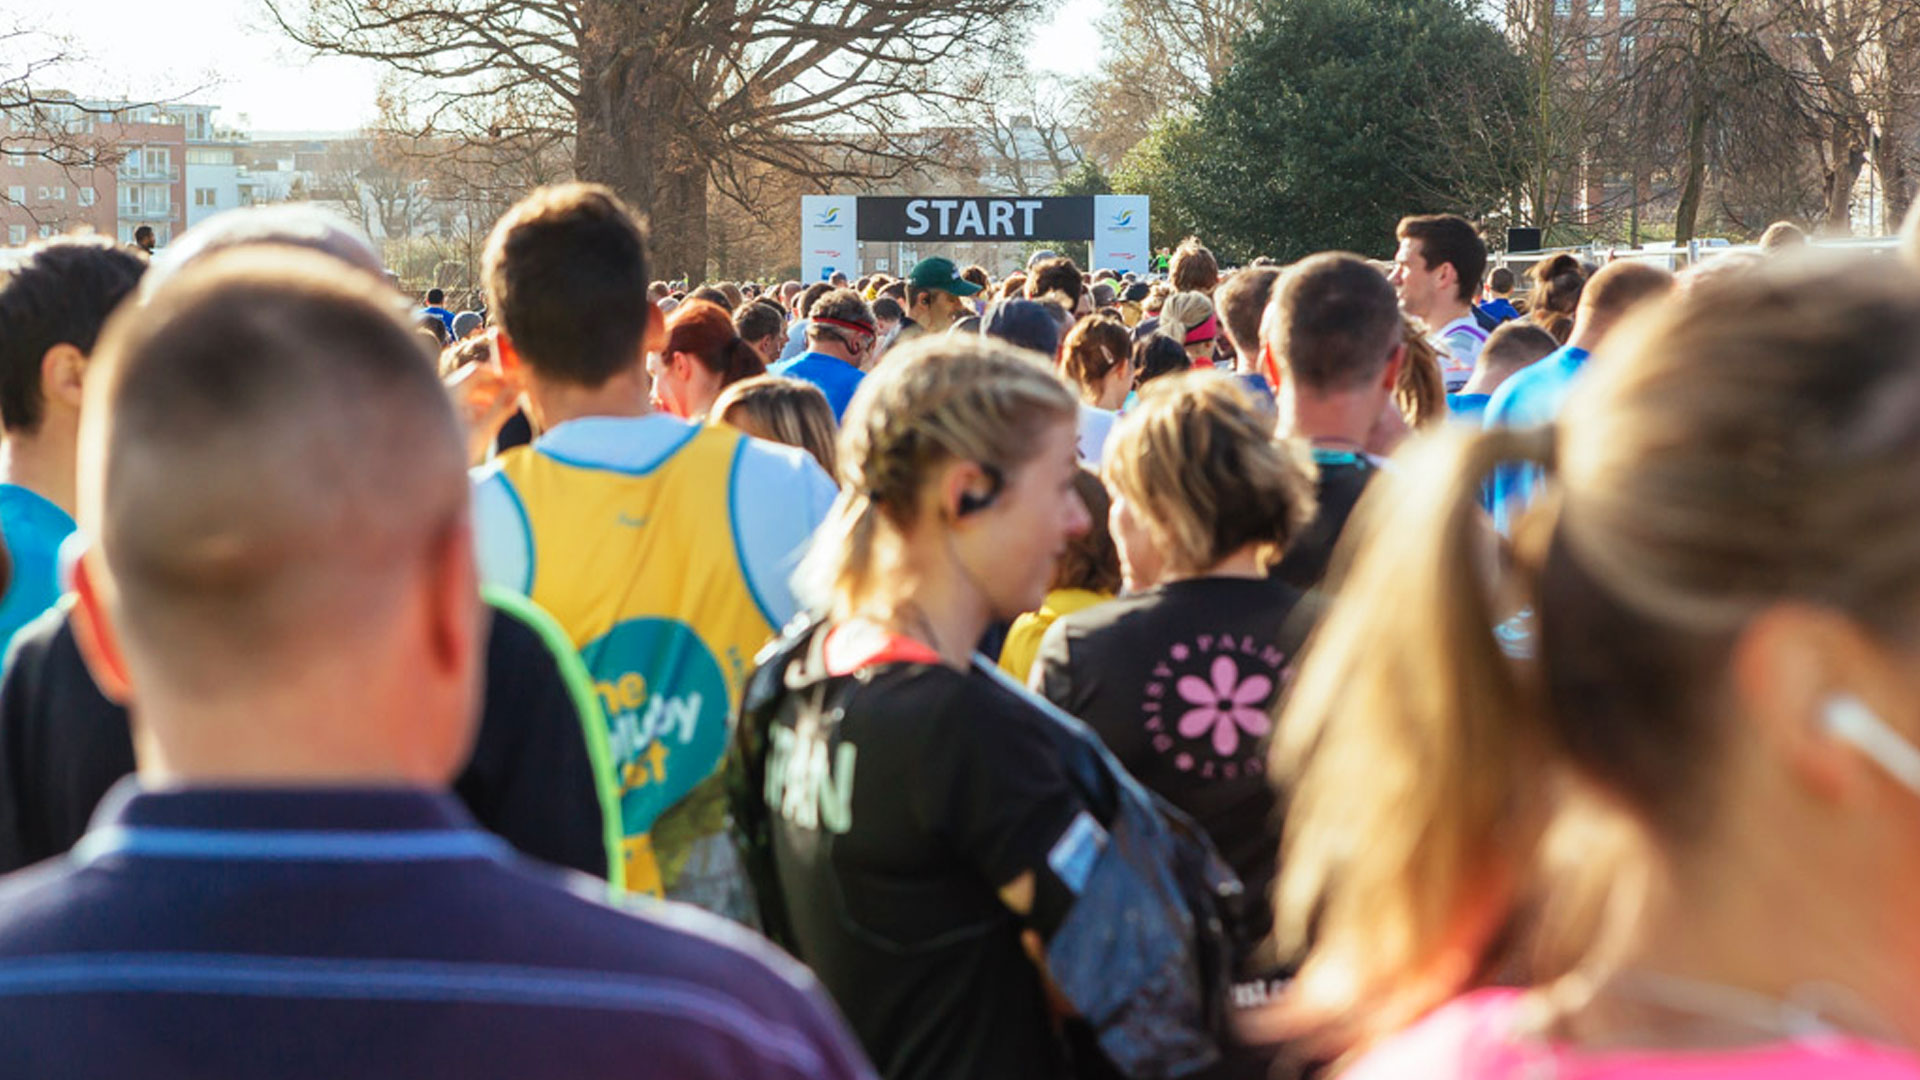 Brighton Marathon 2015 - They do like to be beside the seaside